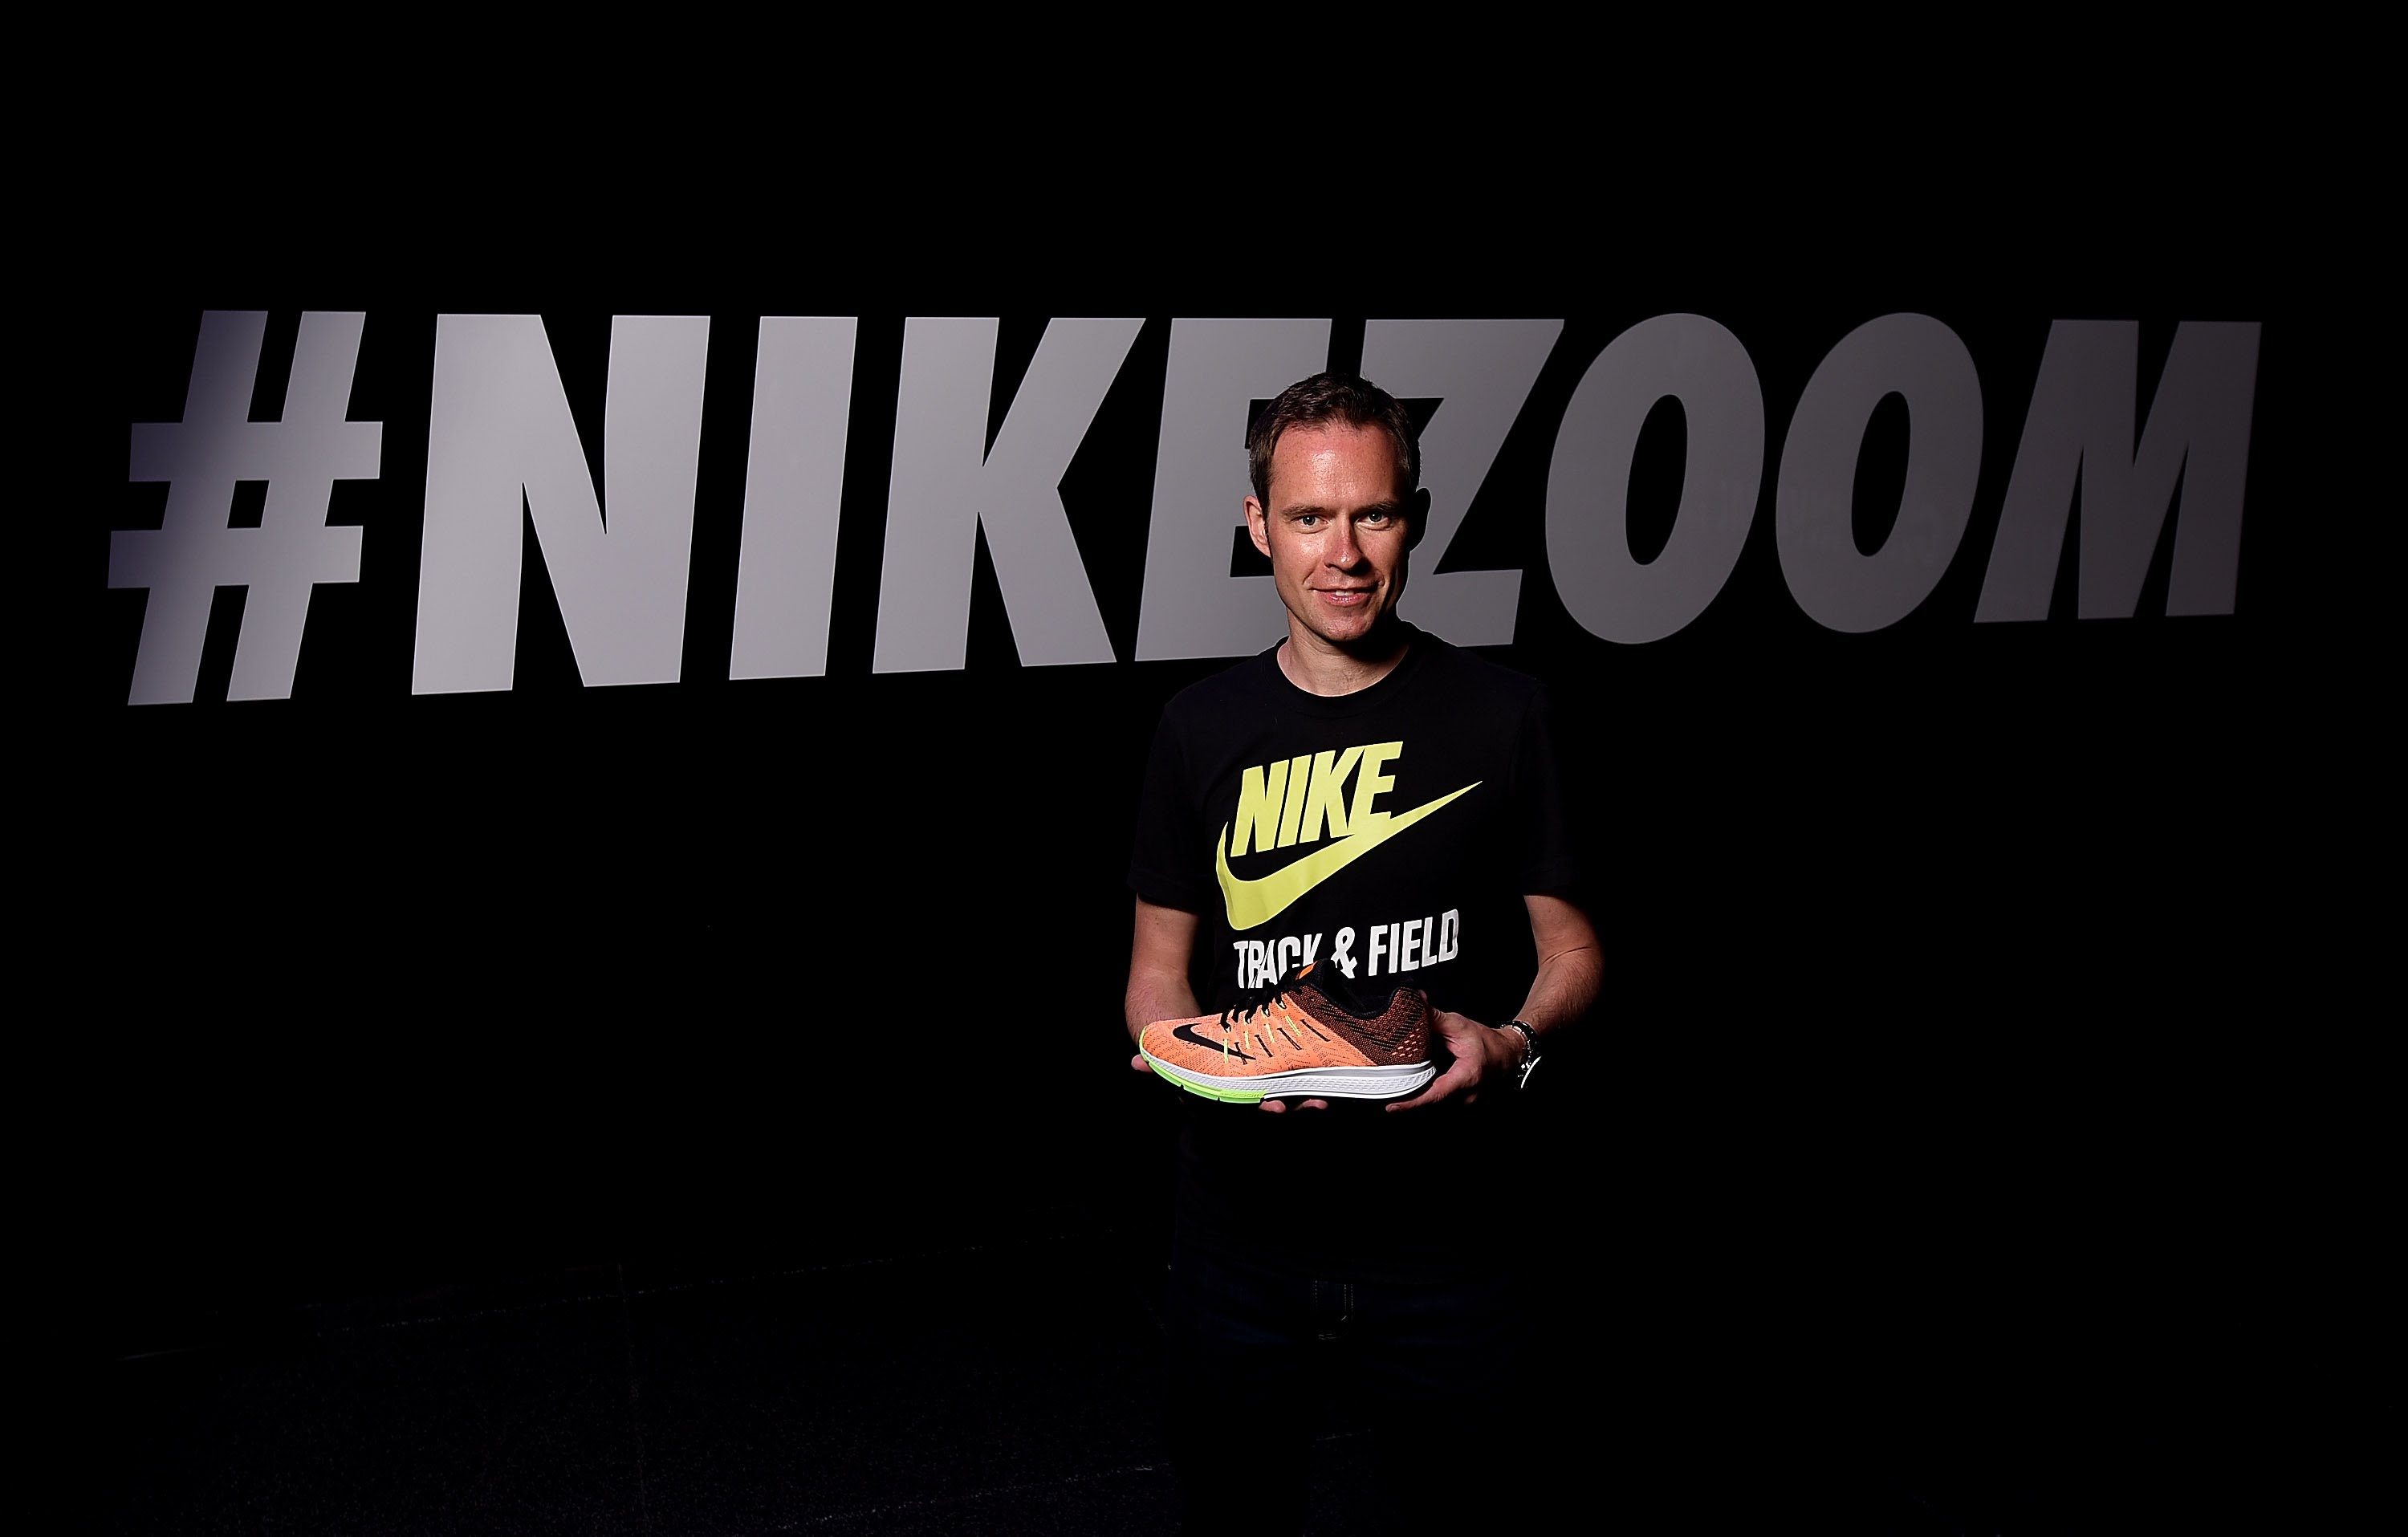 5 Minutes with Sebastian Teche of Nike